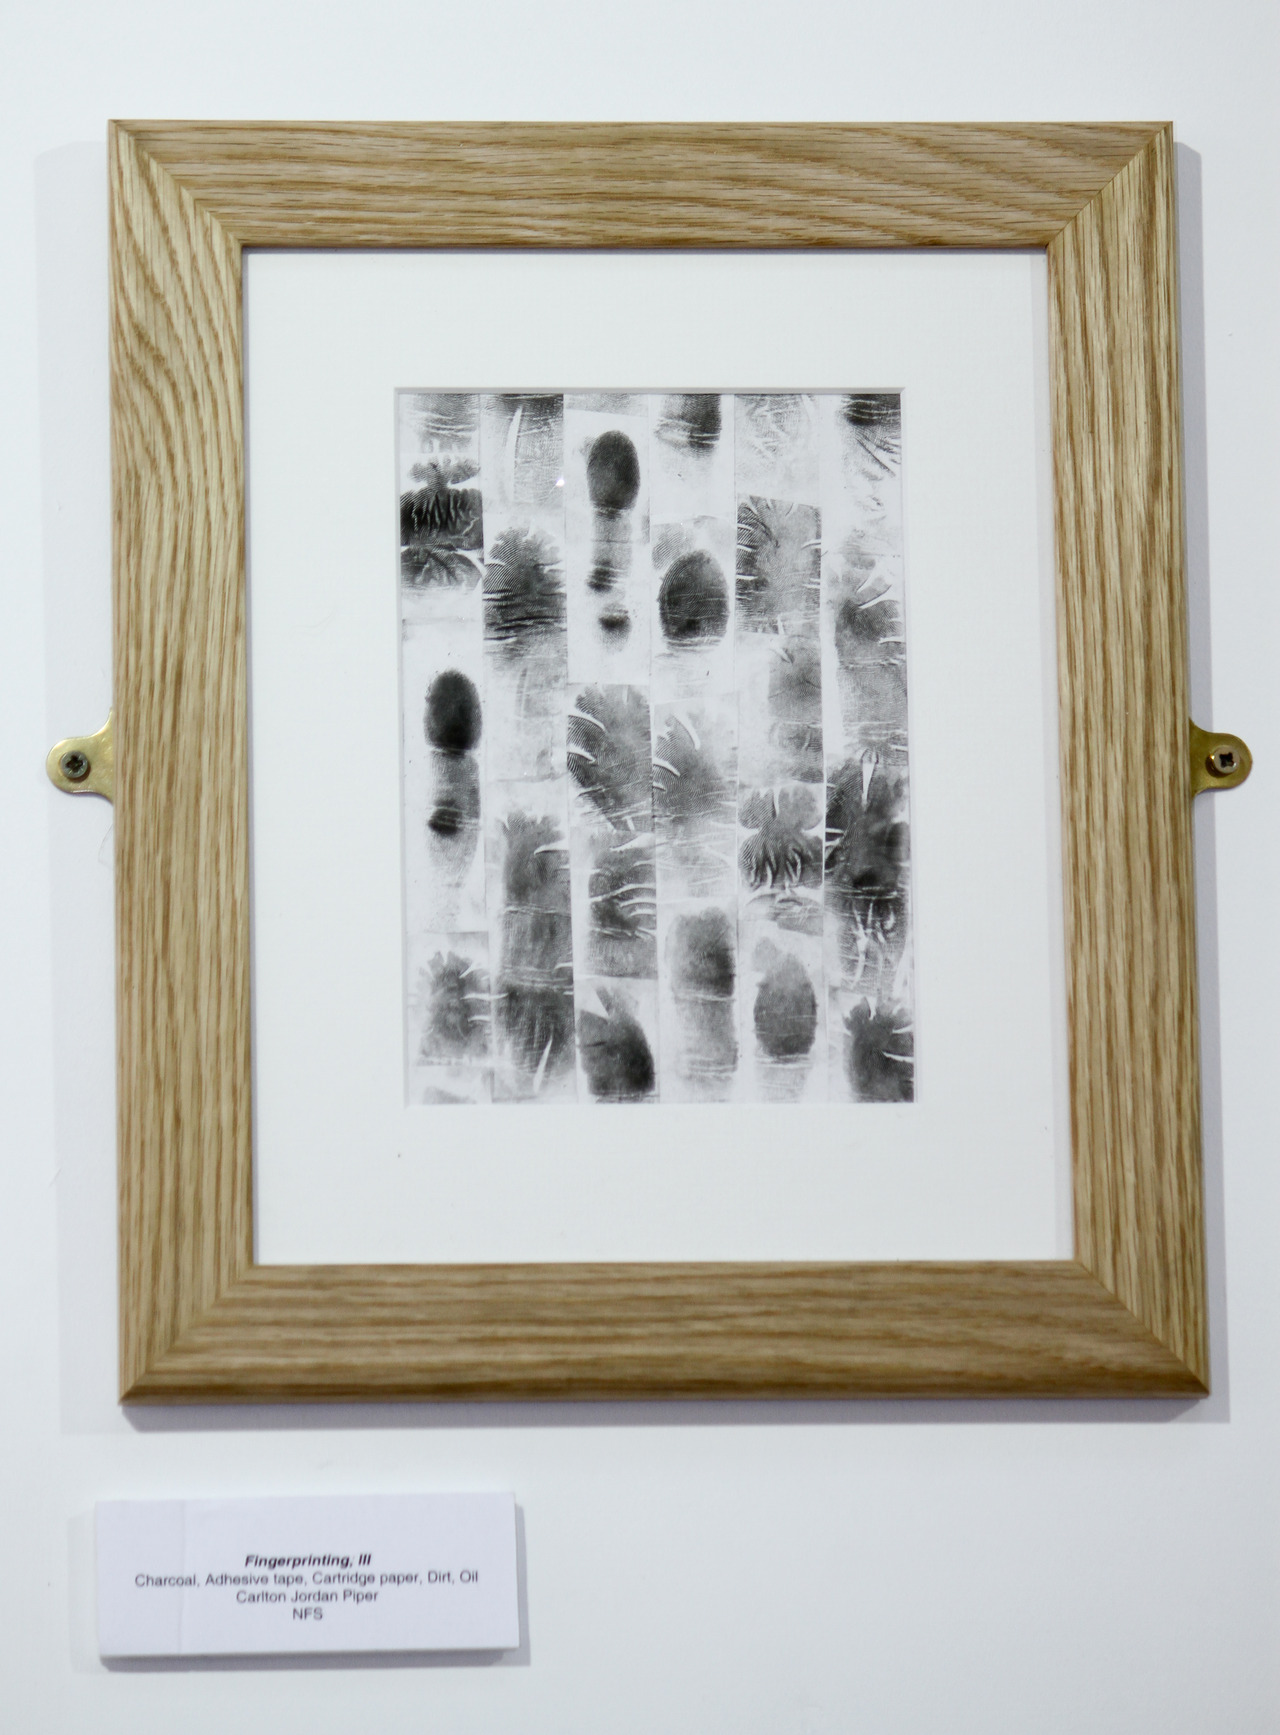 Installation view of Fingerprinting, III